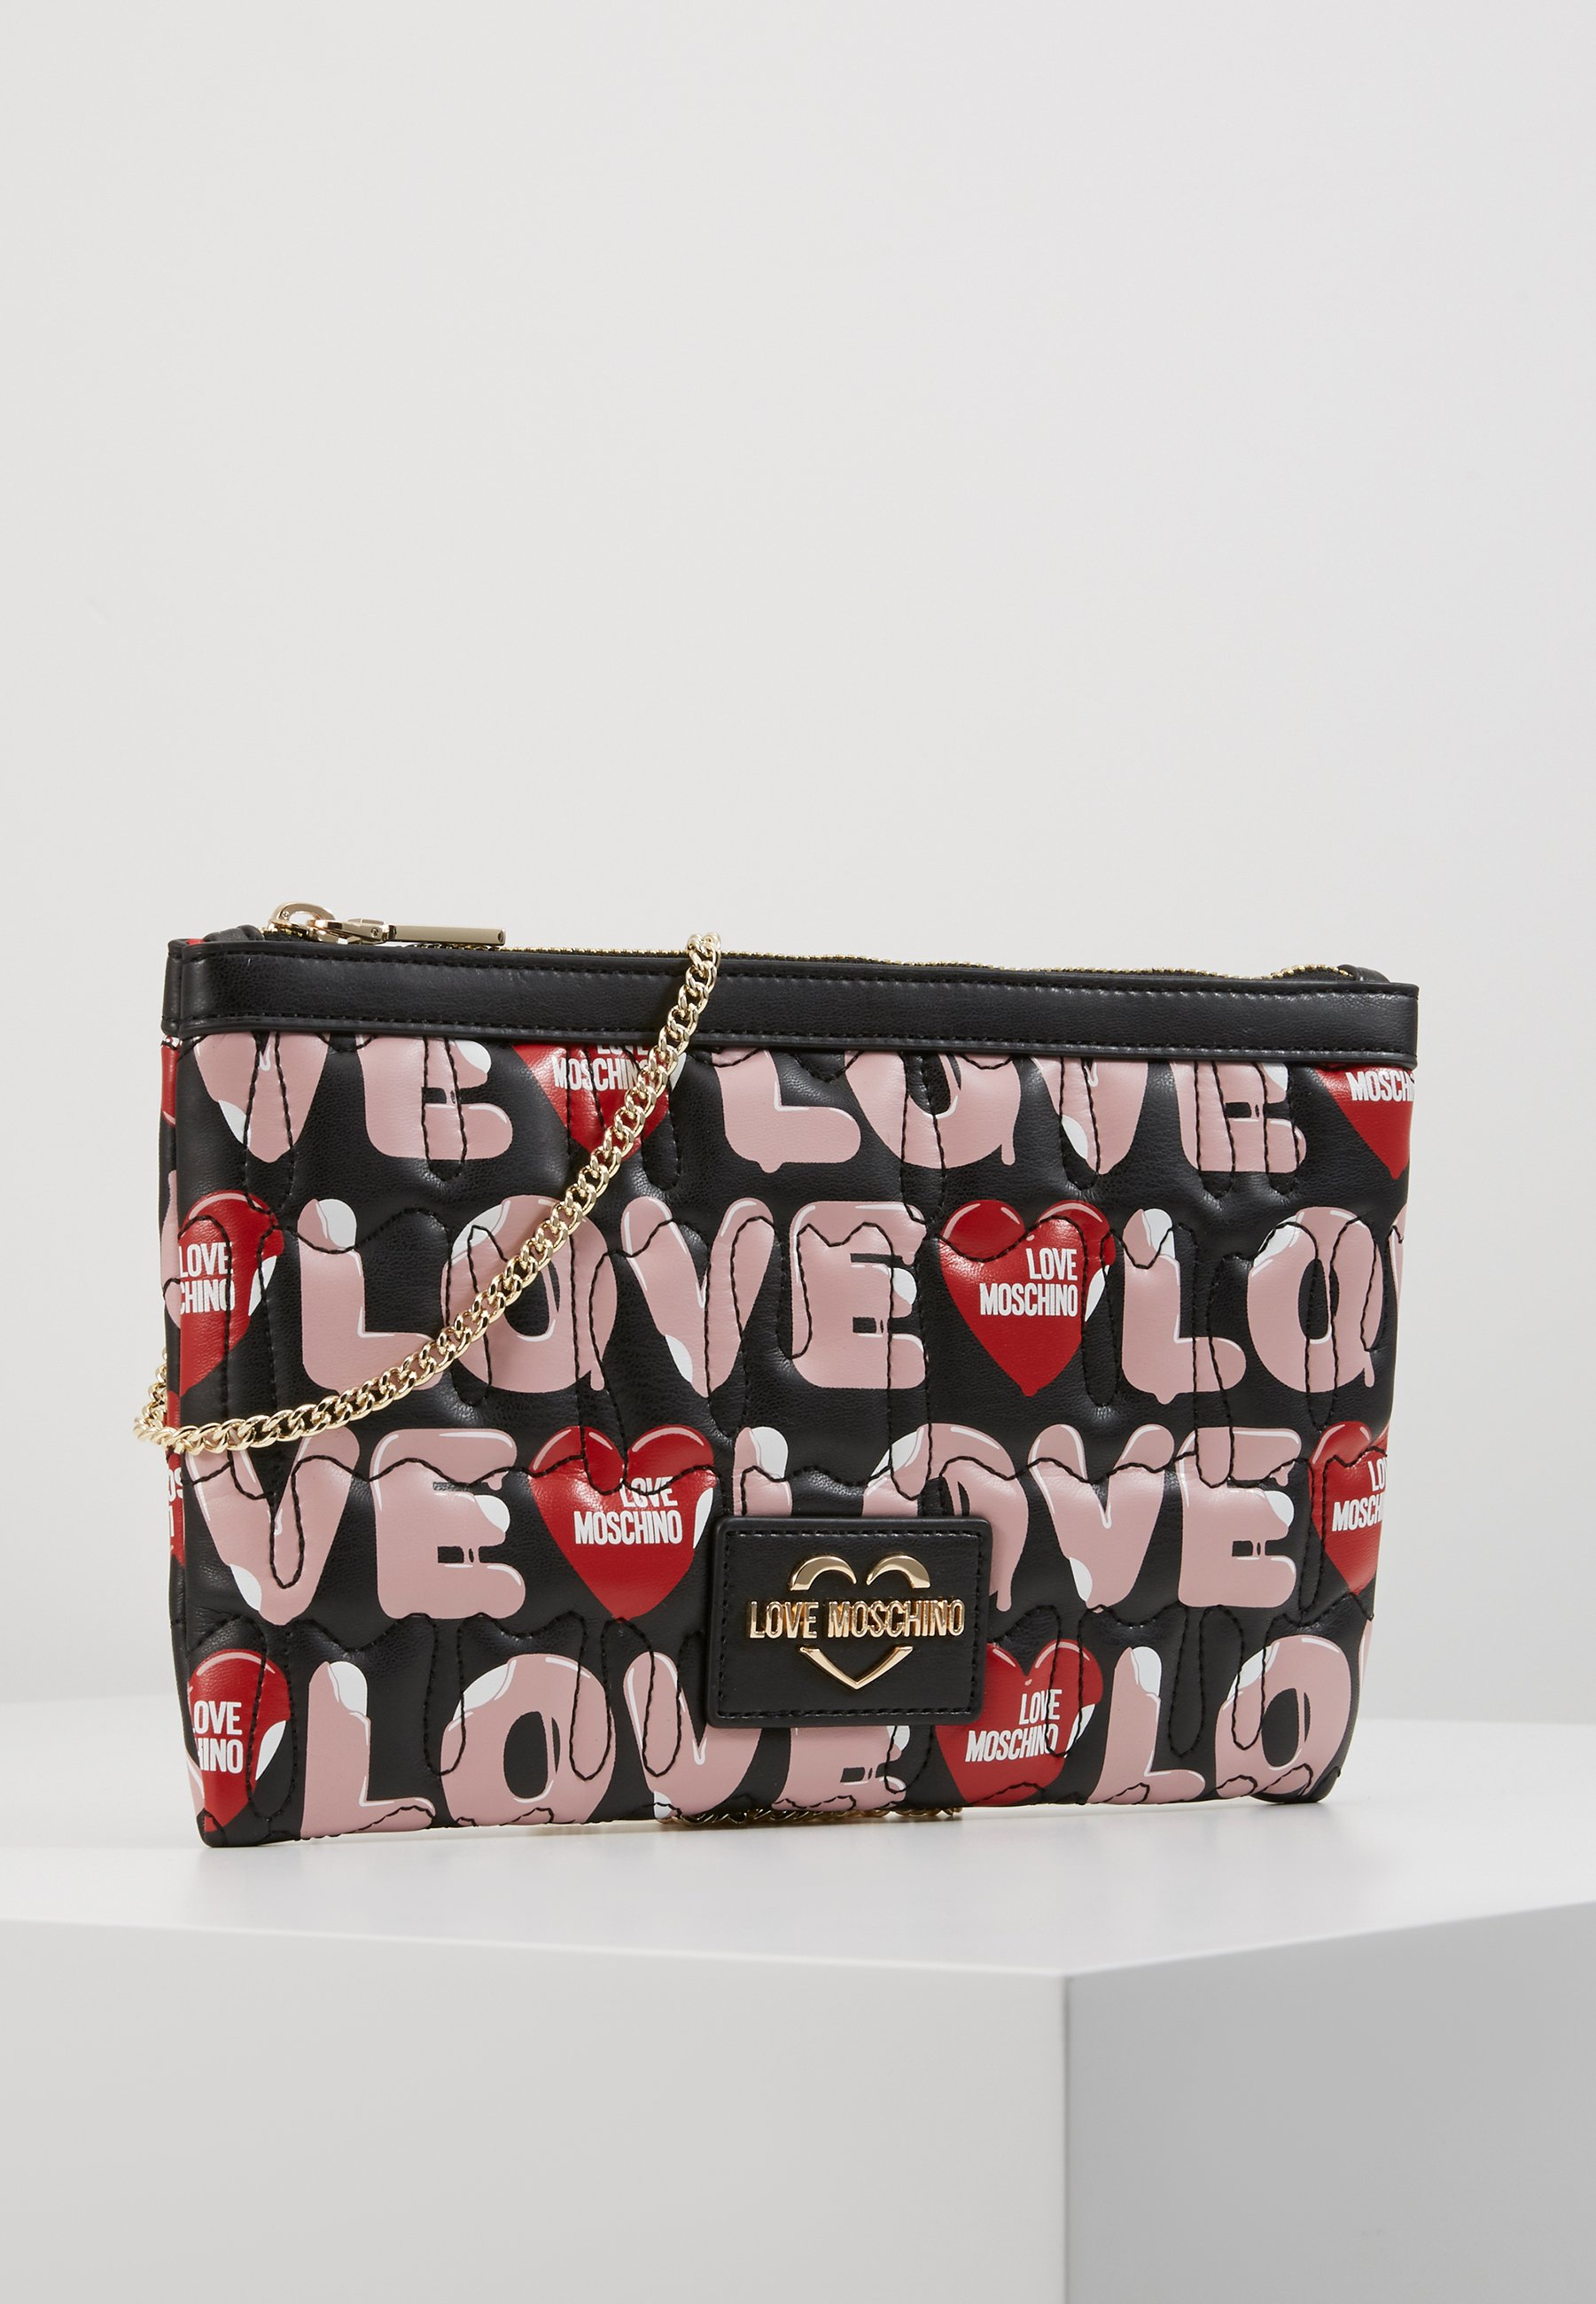 Goedkoop Klassiek Love Moschino Schoudertas - multicolored -  dLgEs